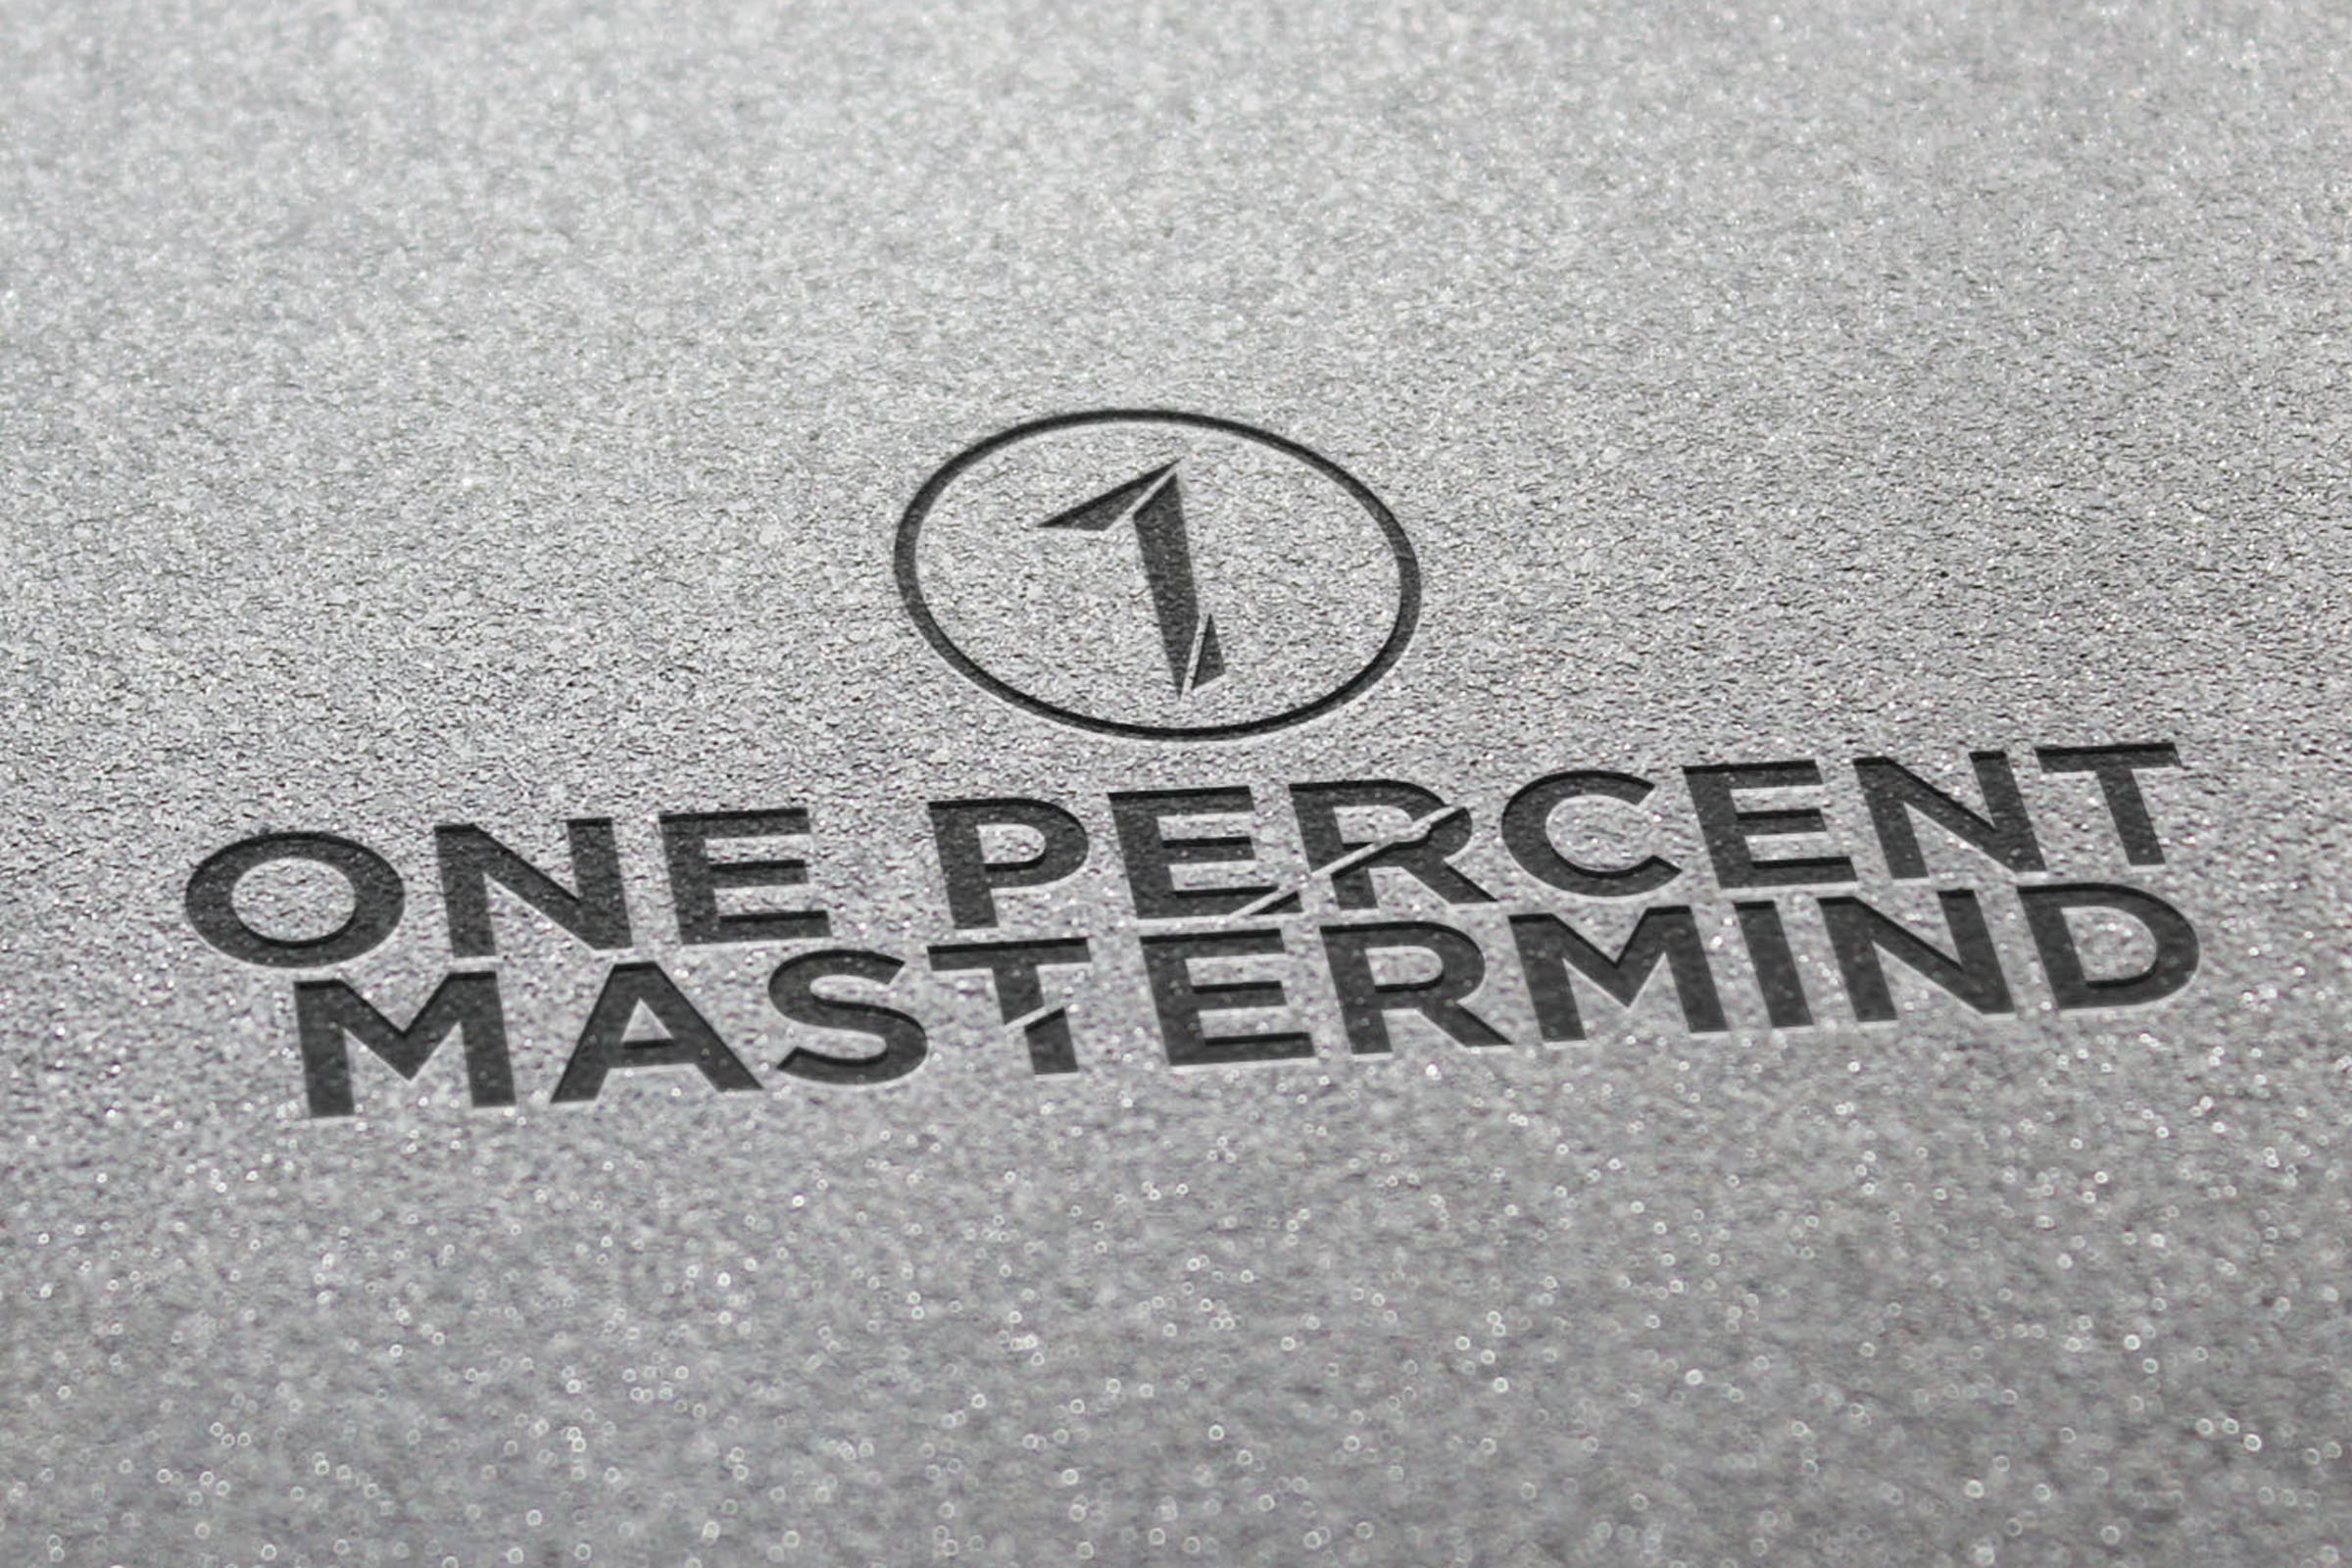 Sales Training One Percent Mastermind